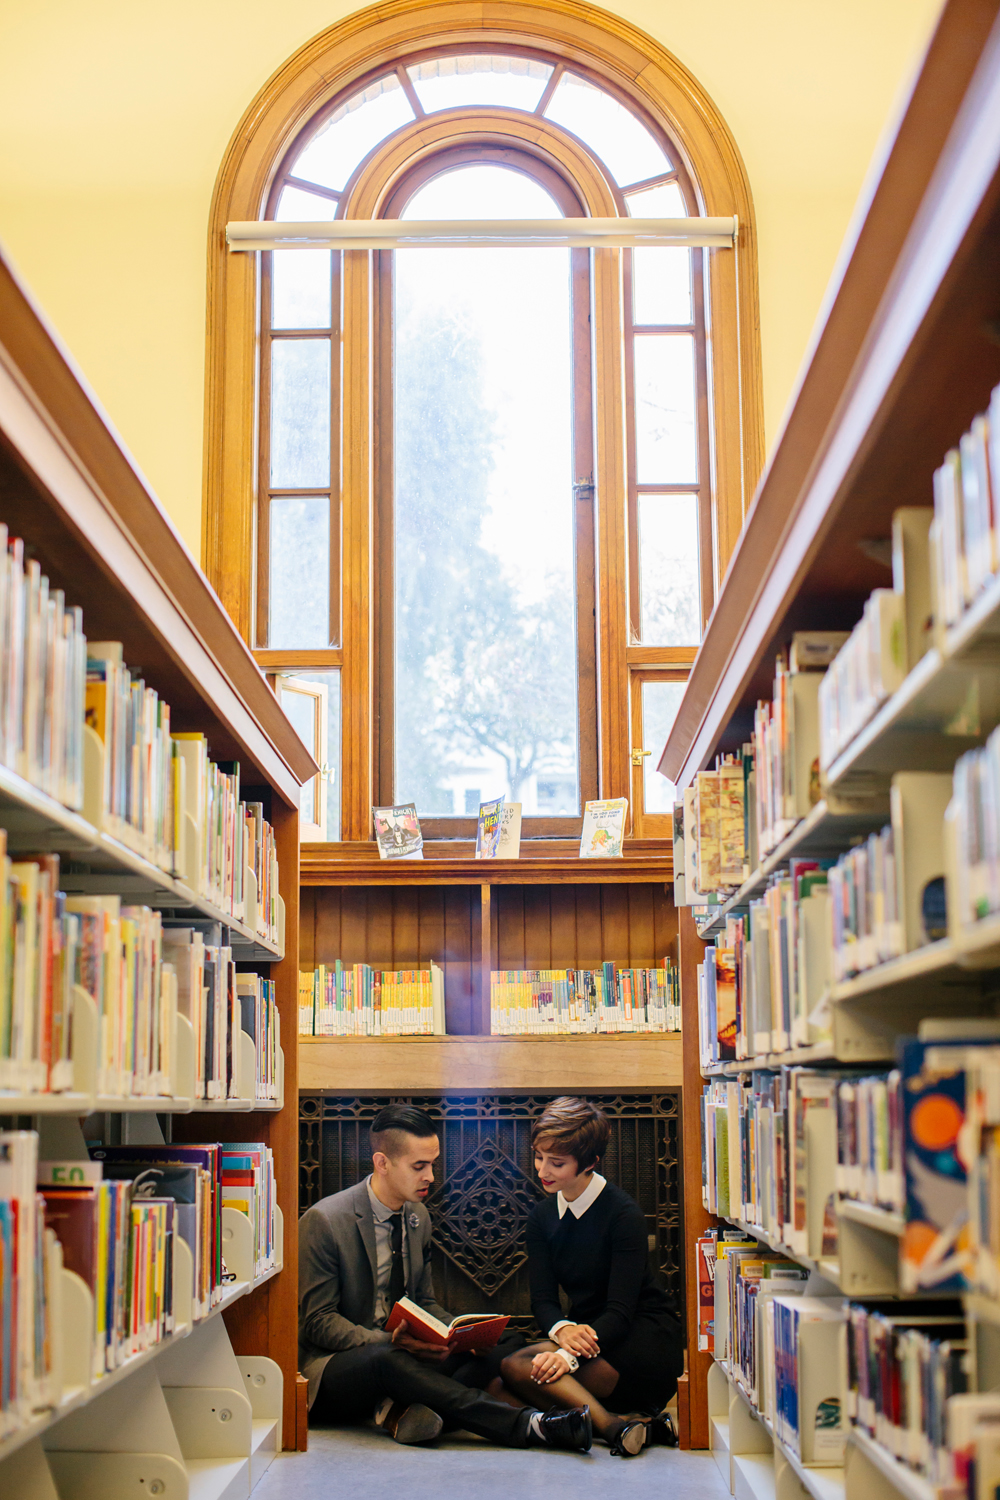 san-francisco-presidio-library-engagement-photography-lilouette-09.jpg